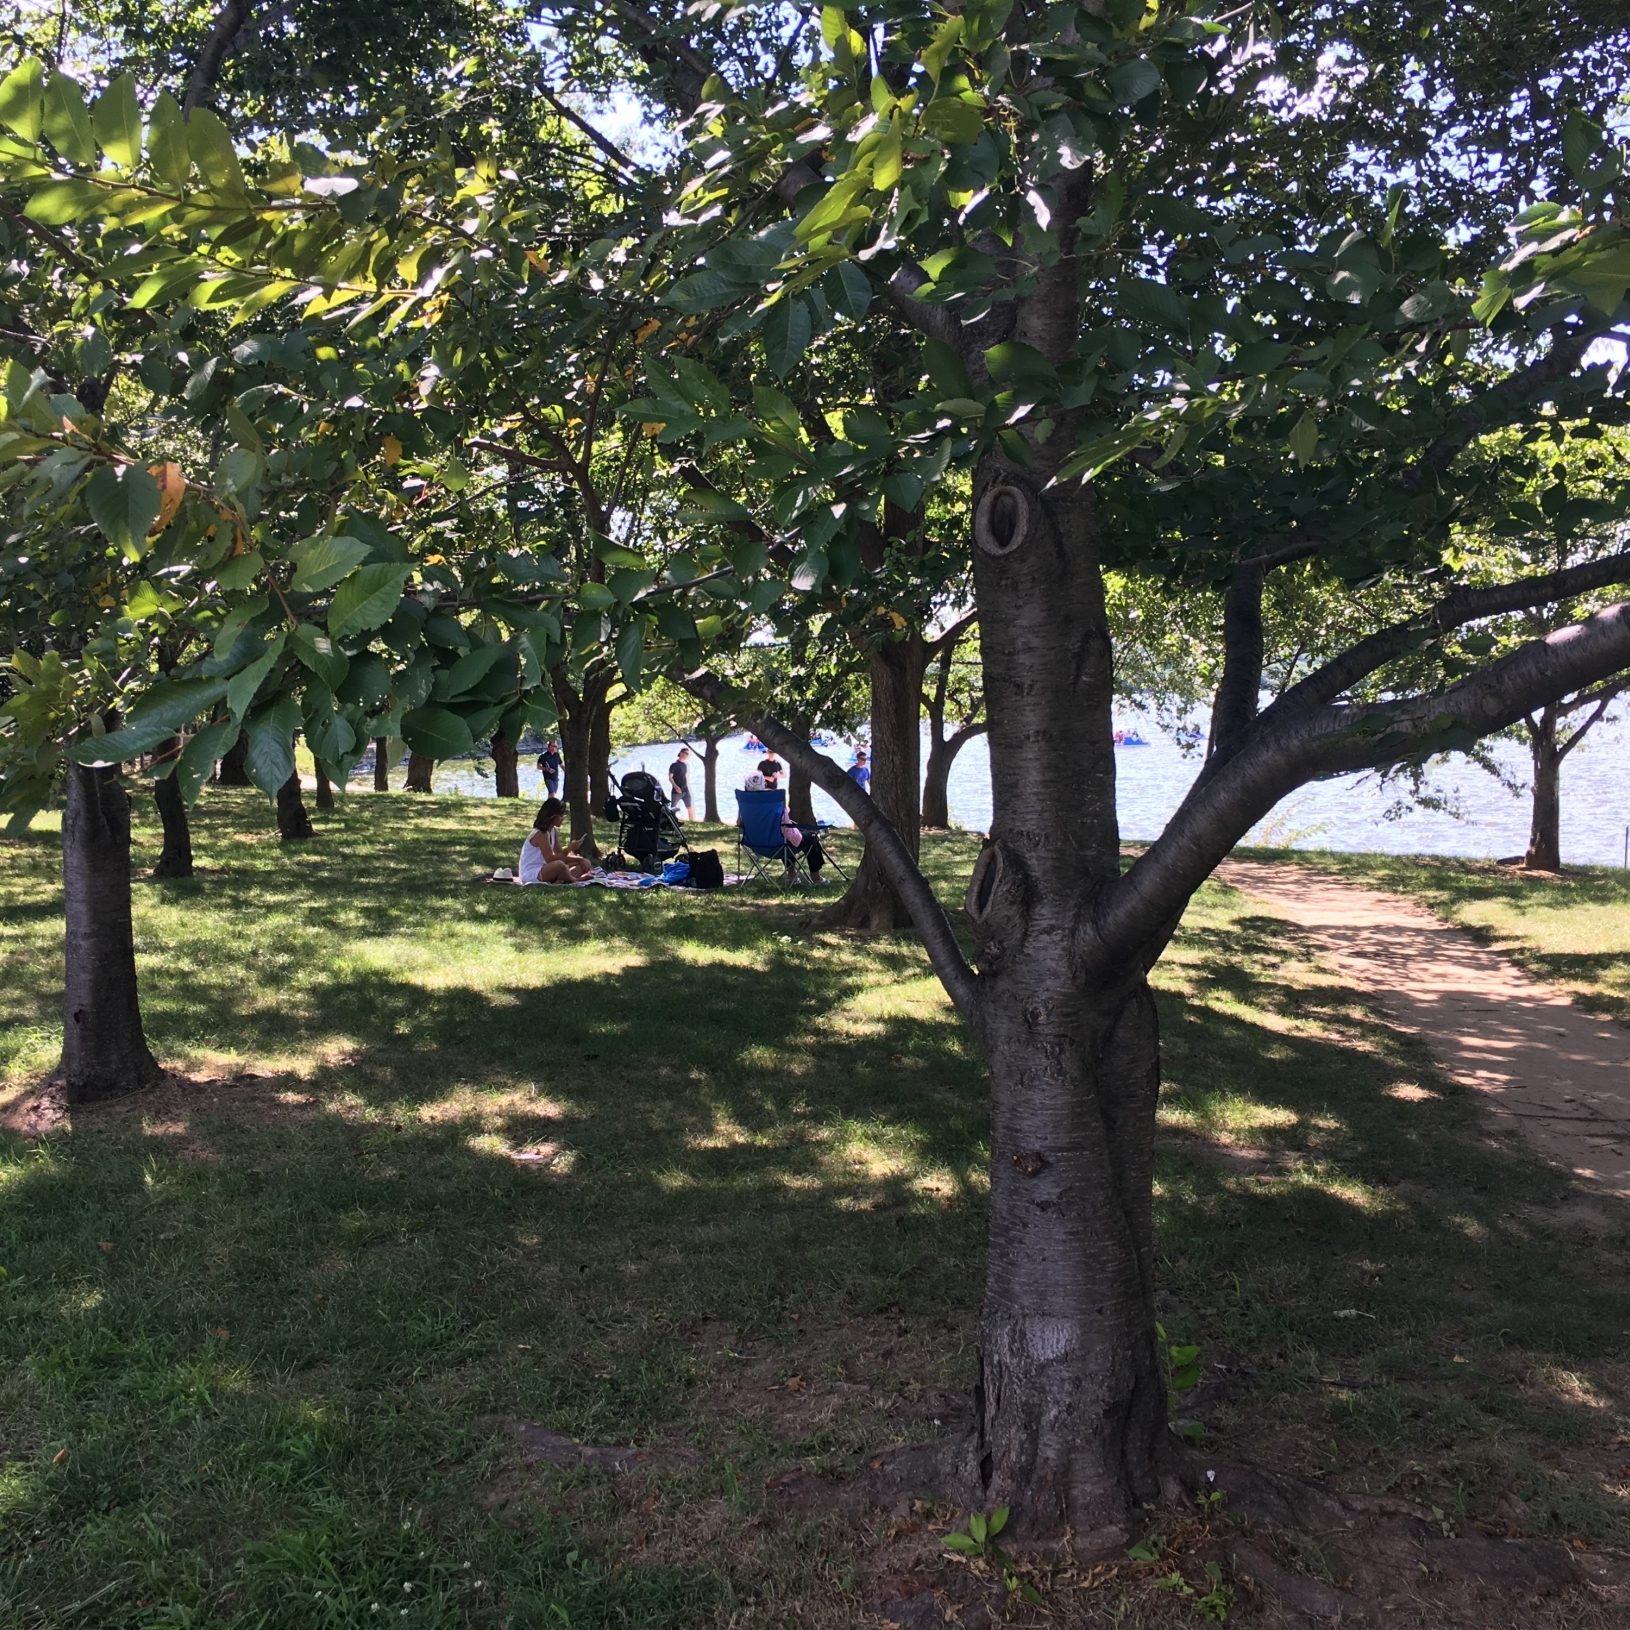 Picnics and strolls under the grove of Cherry Trees by the Jefferson Memorial.